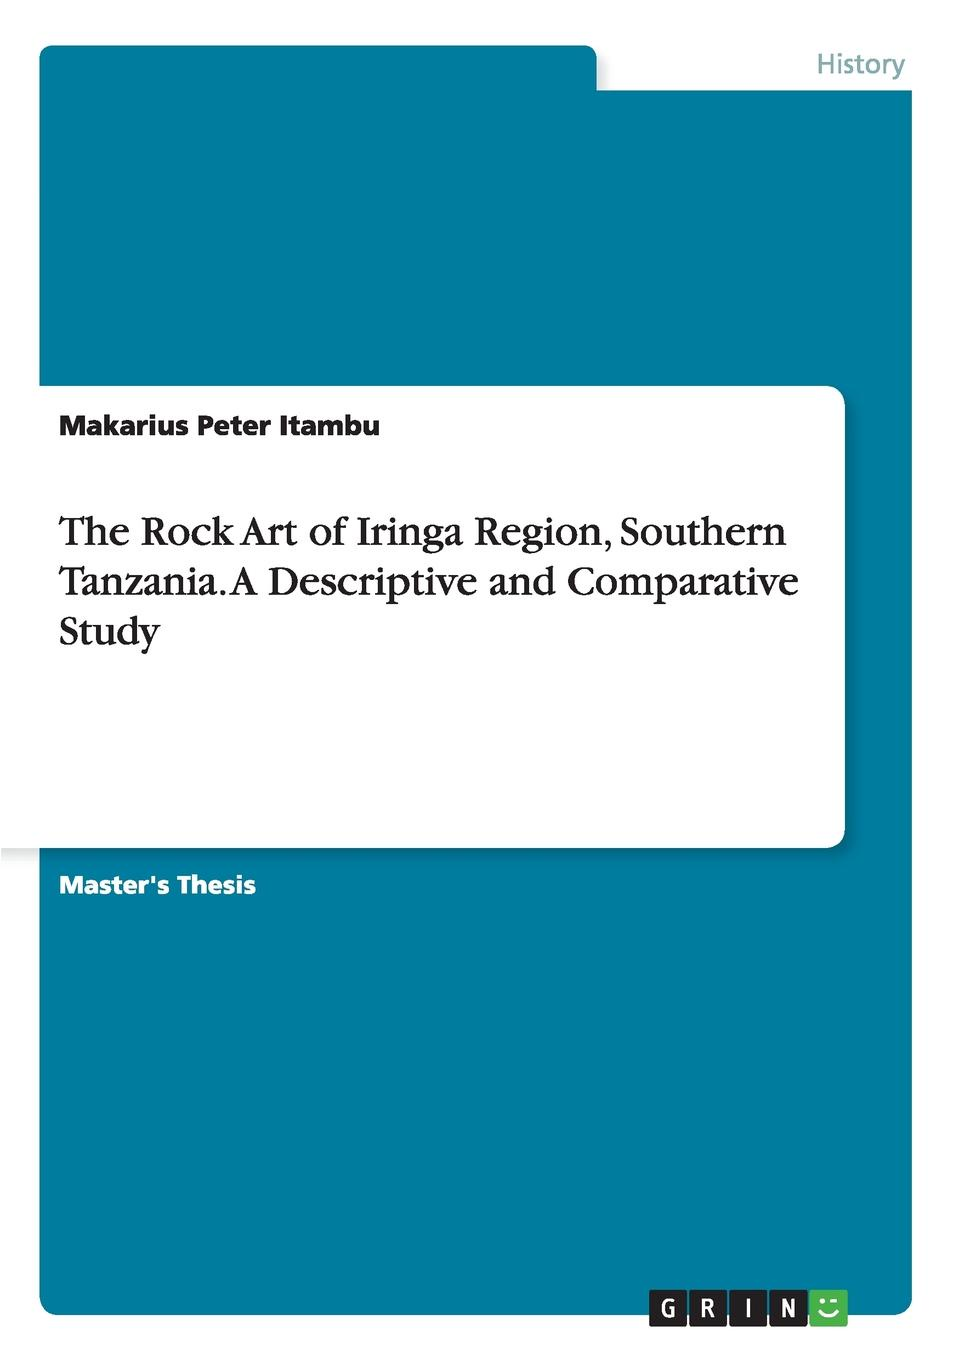 Makarius Peter Itambu The Rock Art of Iringa Region, Southern Tanzania mcdonald jo a companion to rock art